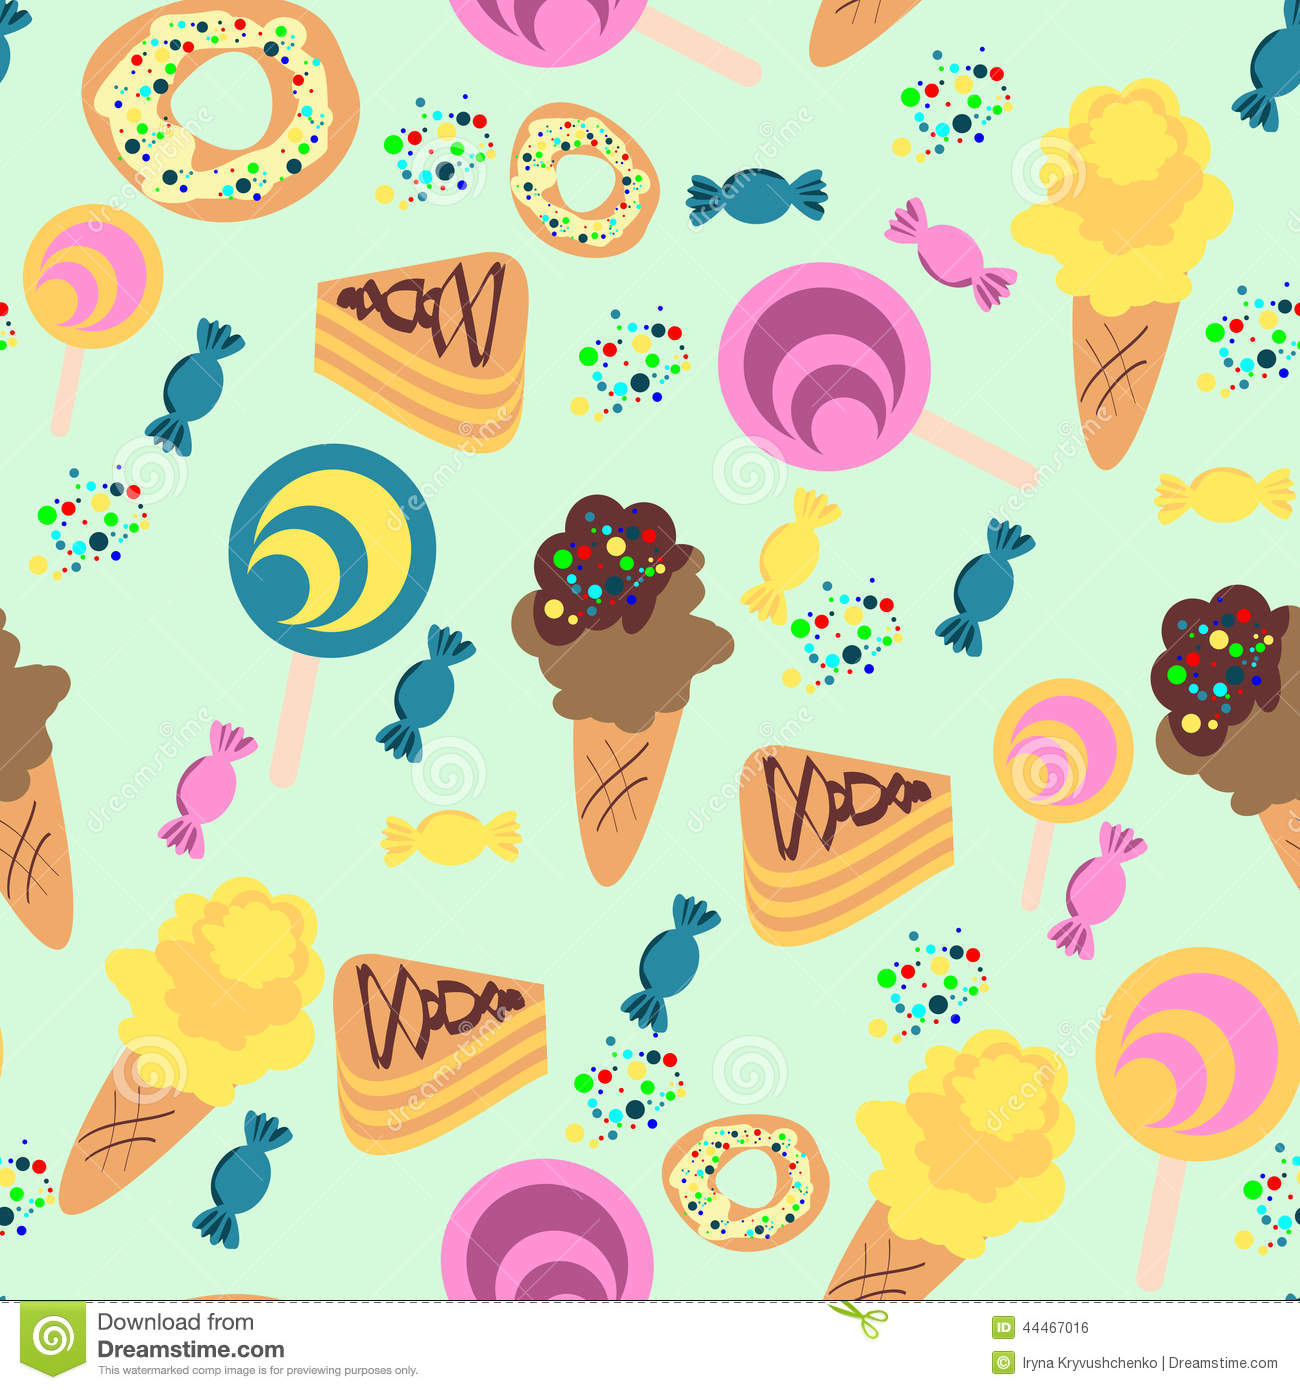 Sweet Ice Cream Flat Colorful Seamless Pattern Vector: Seamless Confection Pattern. Ice-cream, Candies, Pies